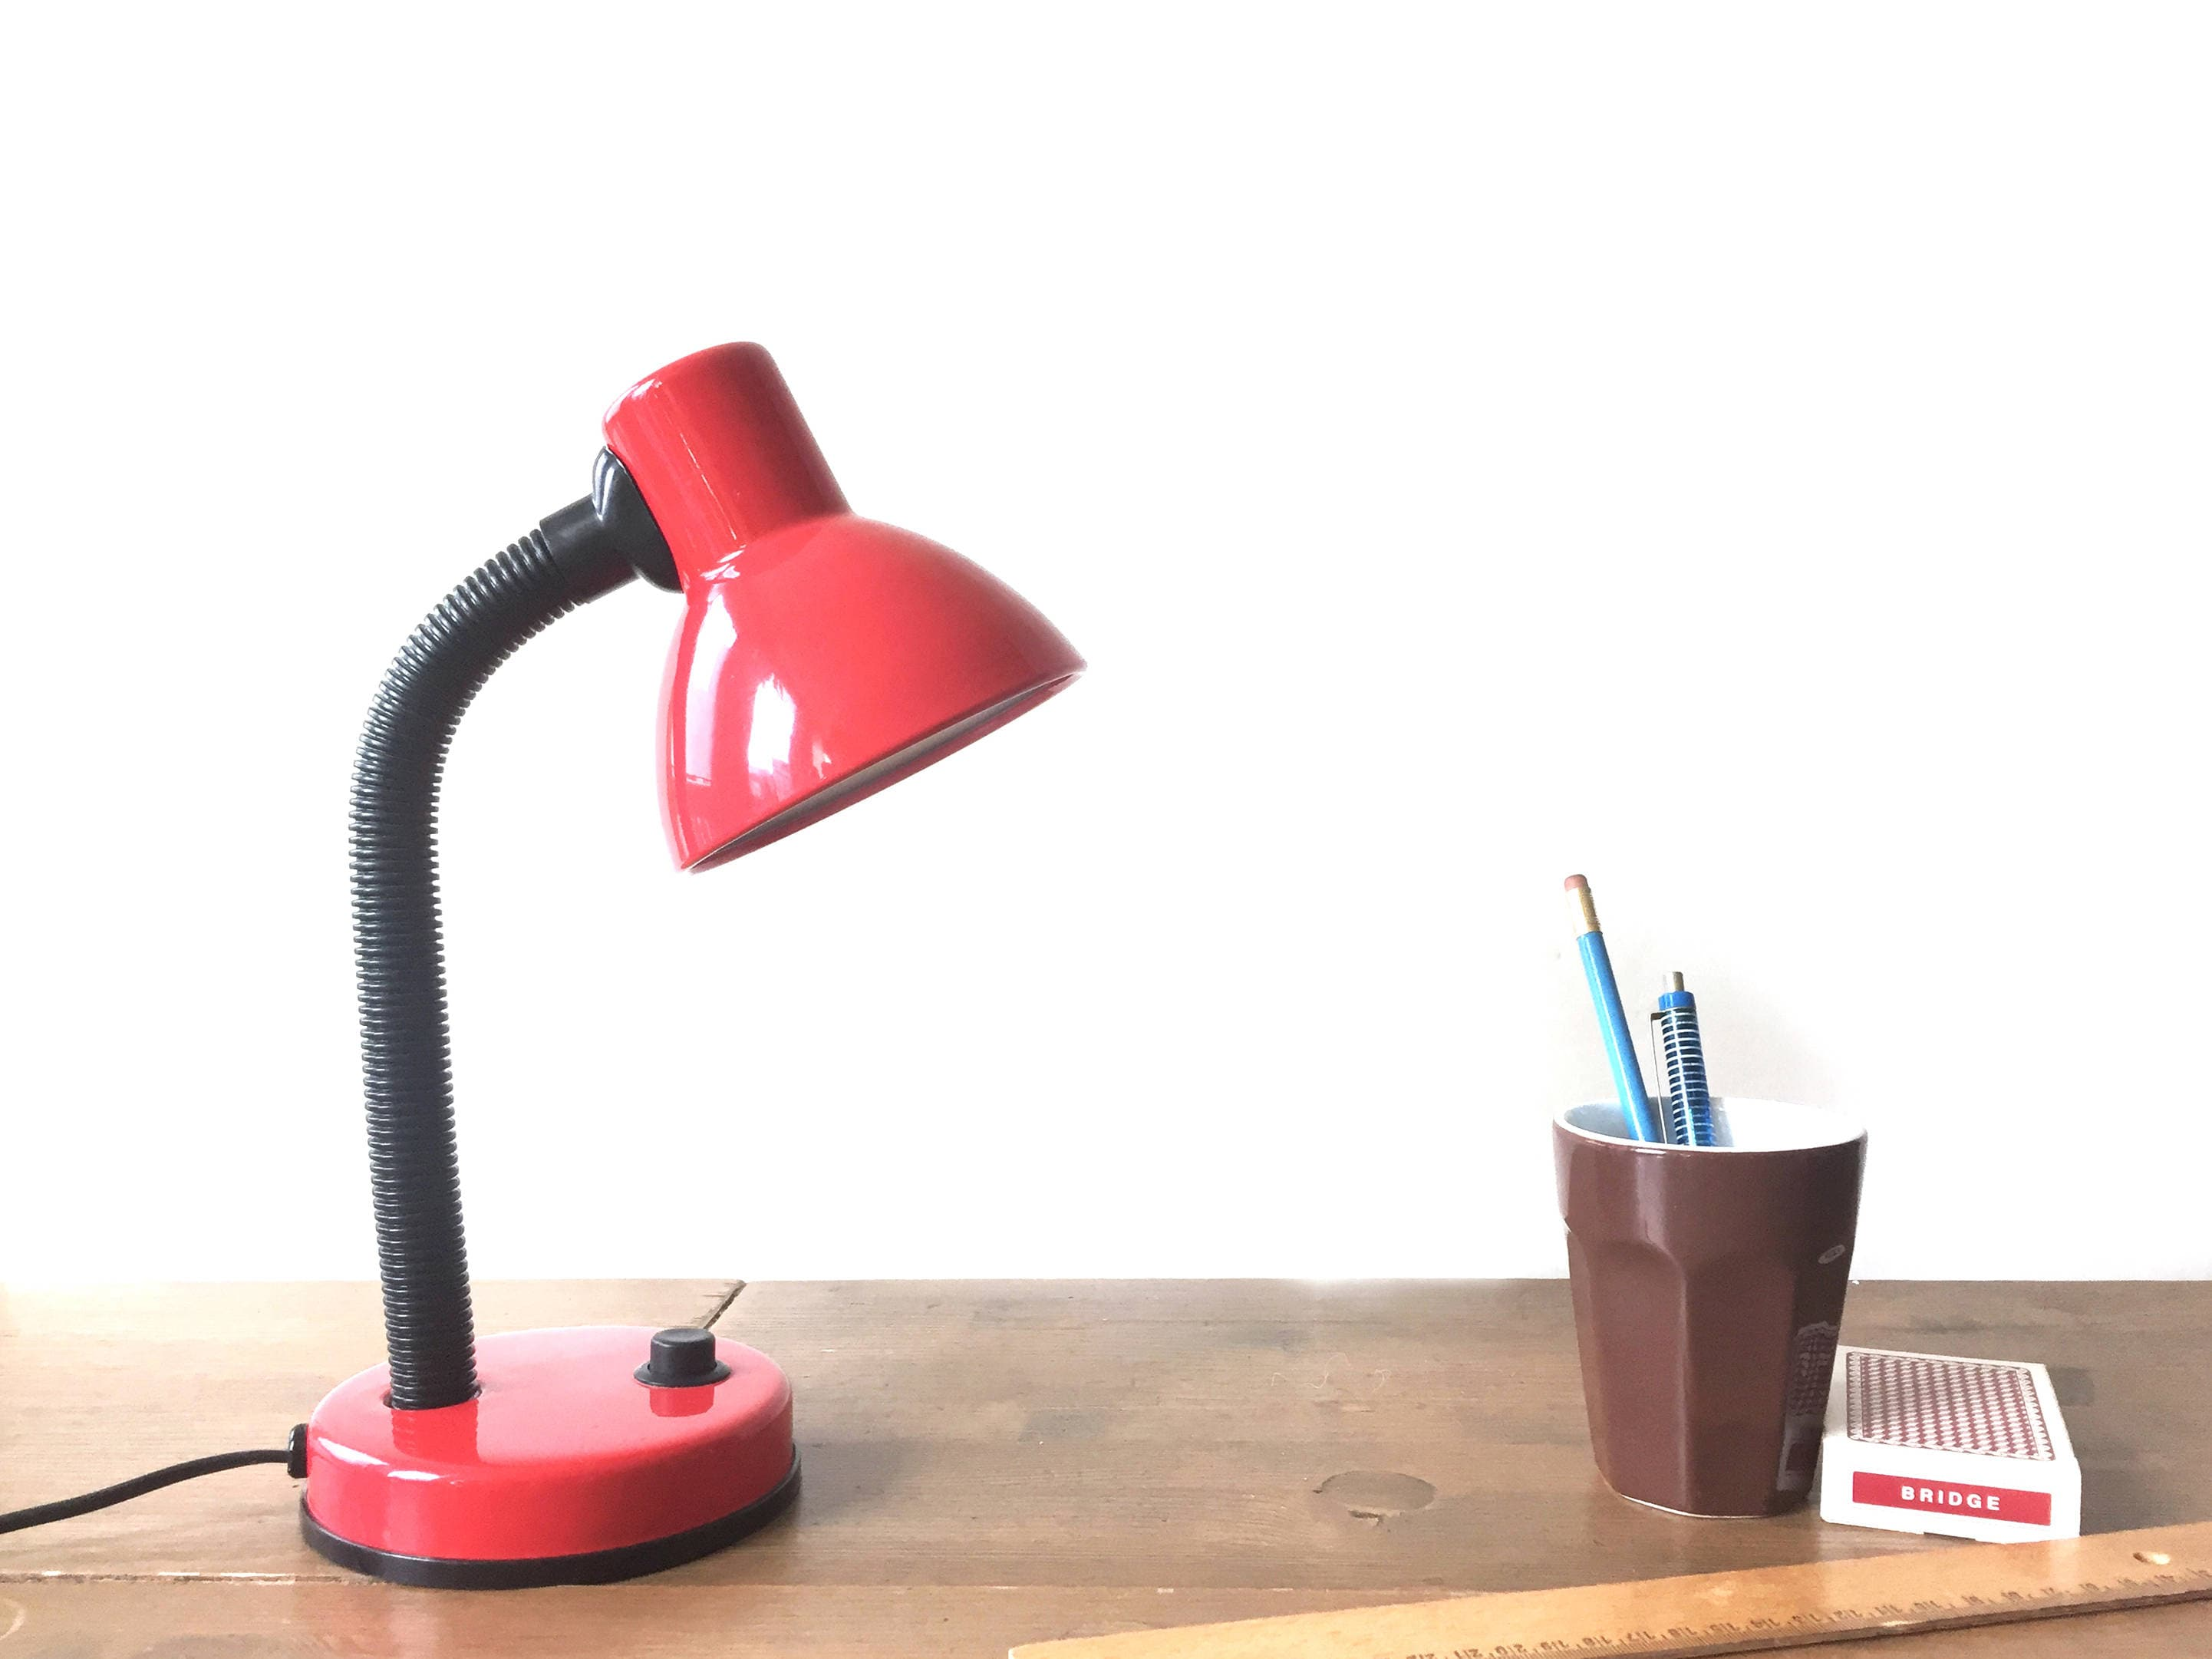 lamps gifts retro by home desk for etsy the black lamp retrotreasuresleeds on red pin